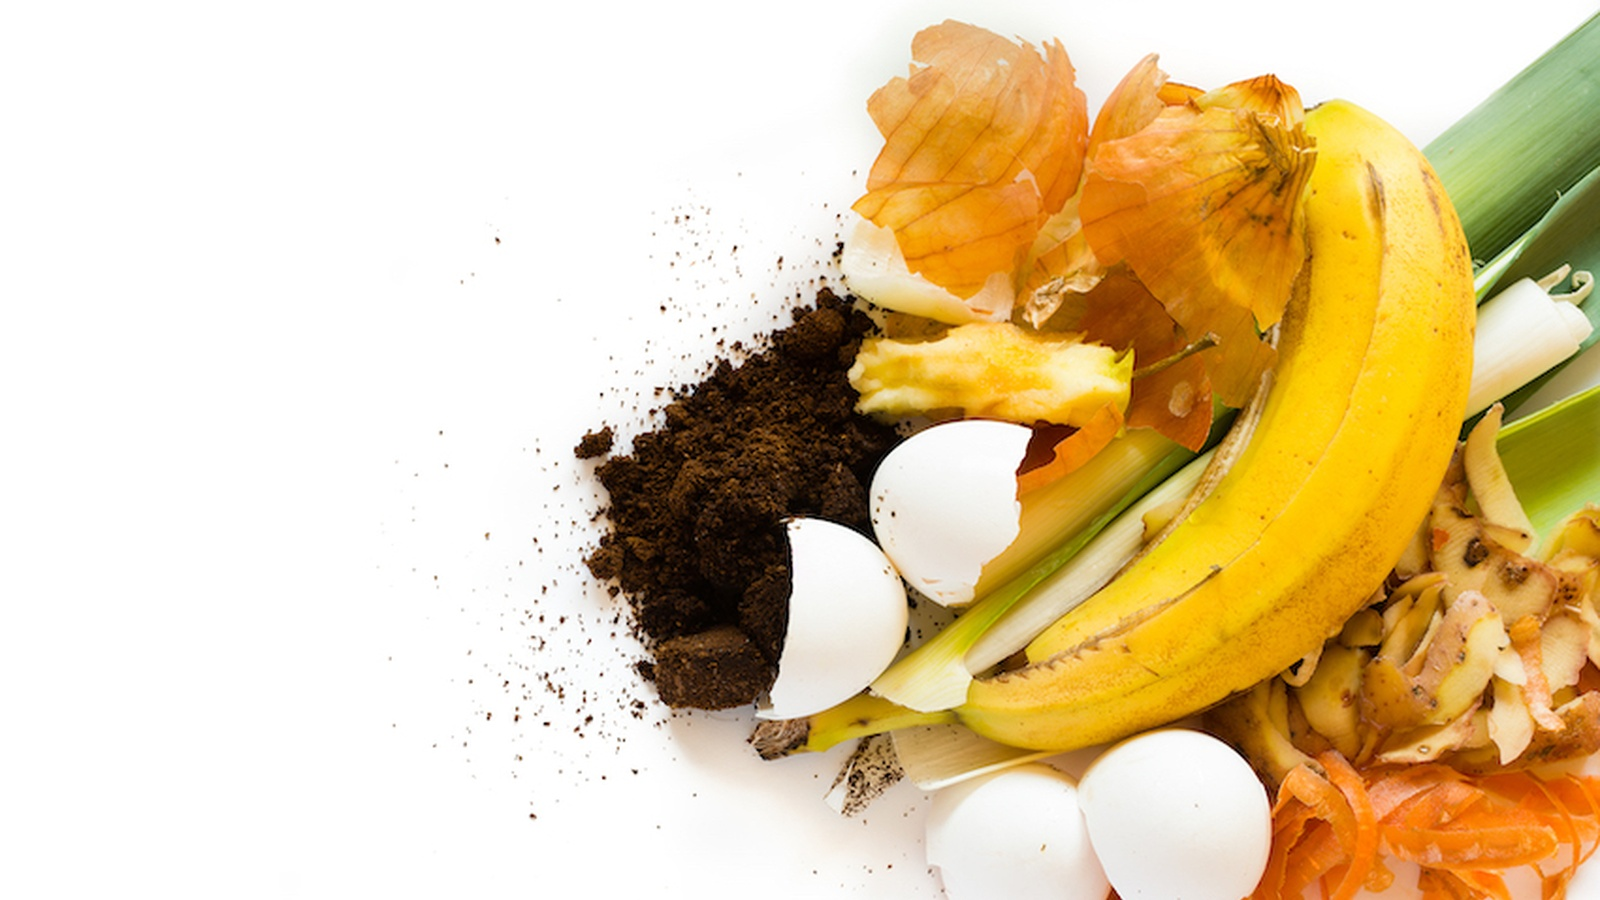 The Case For Composting